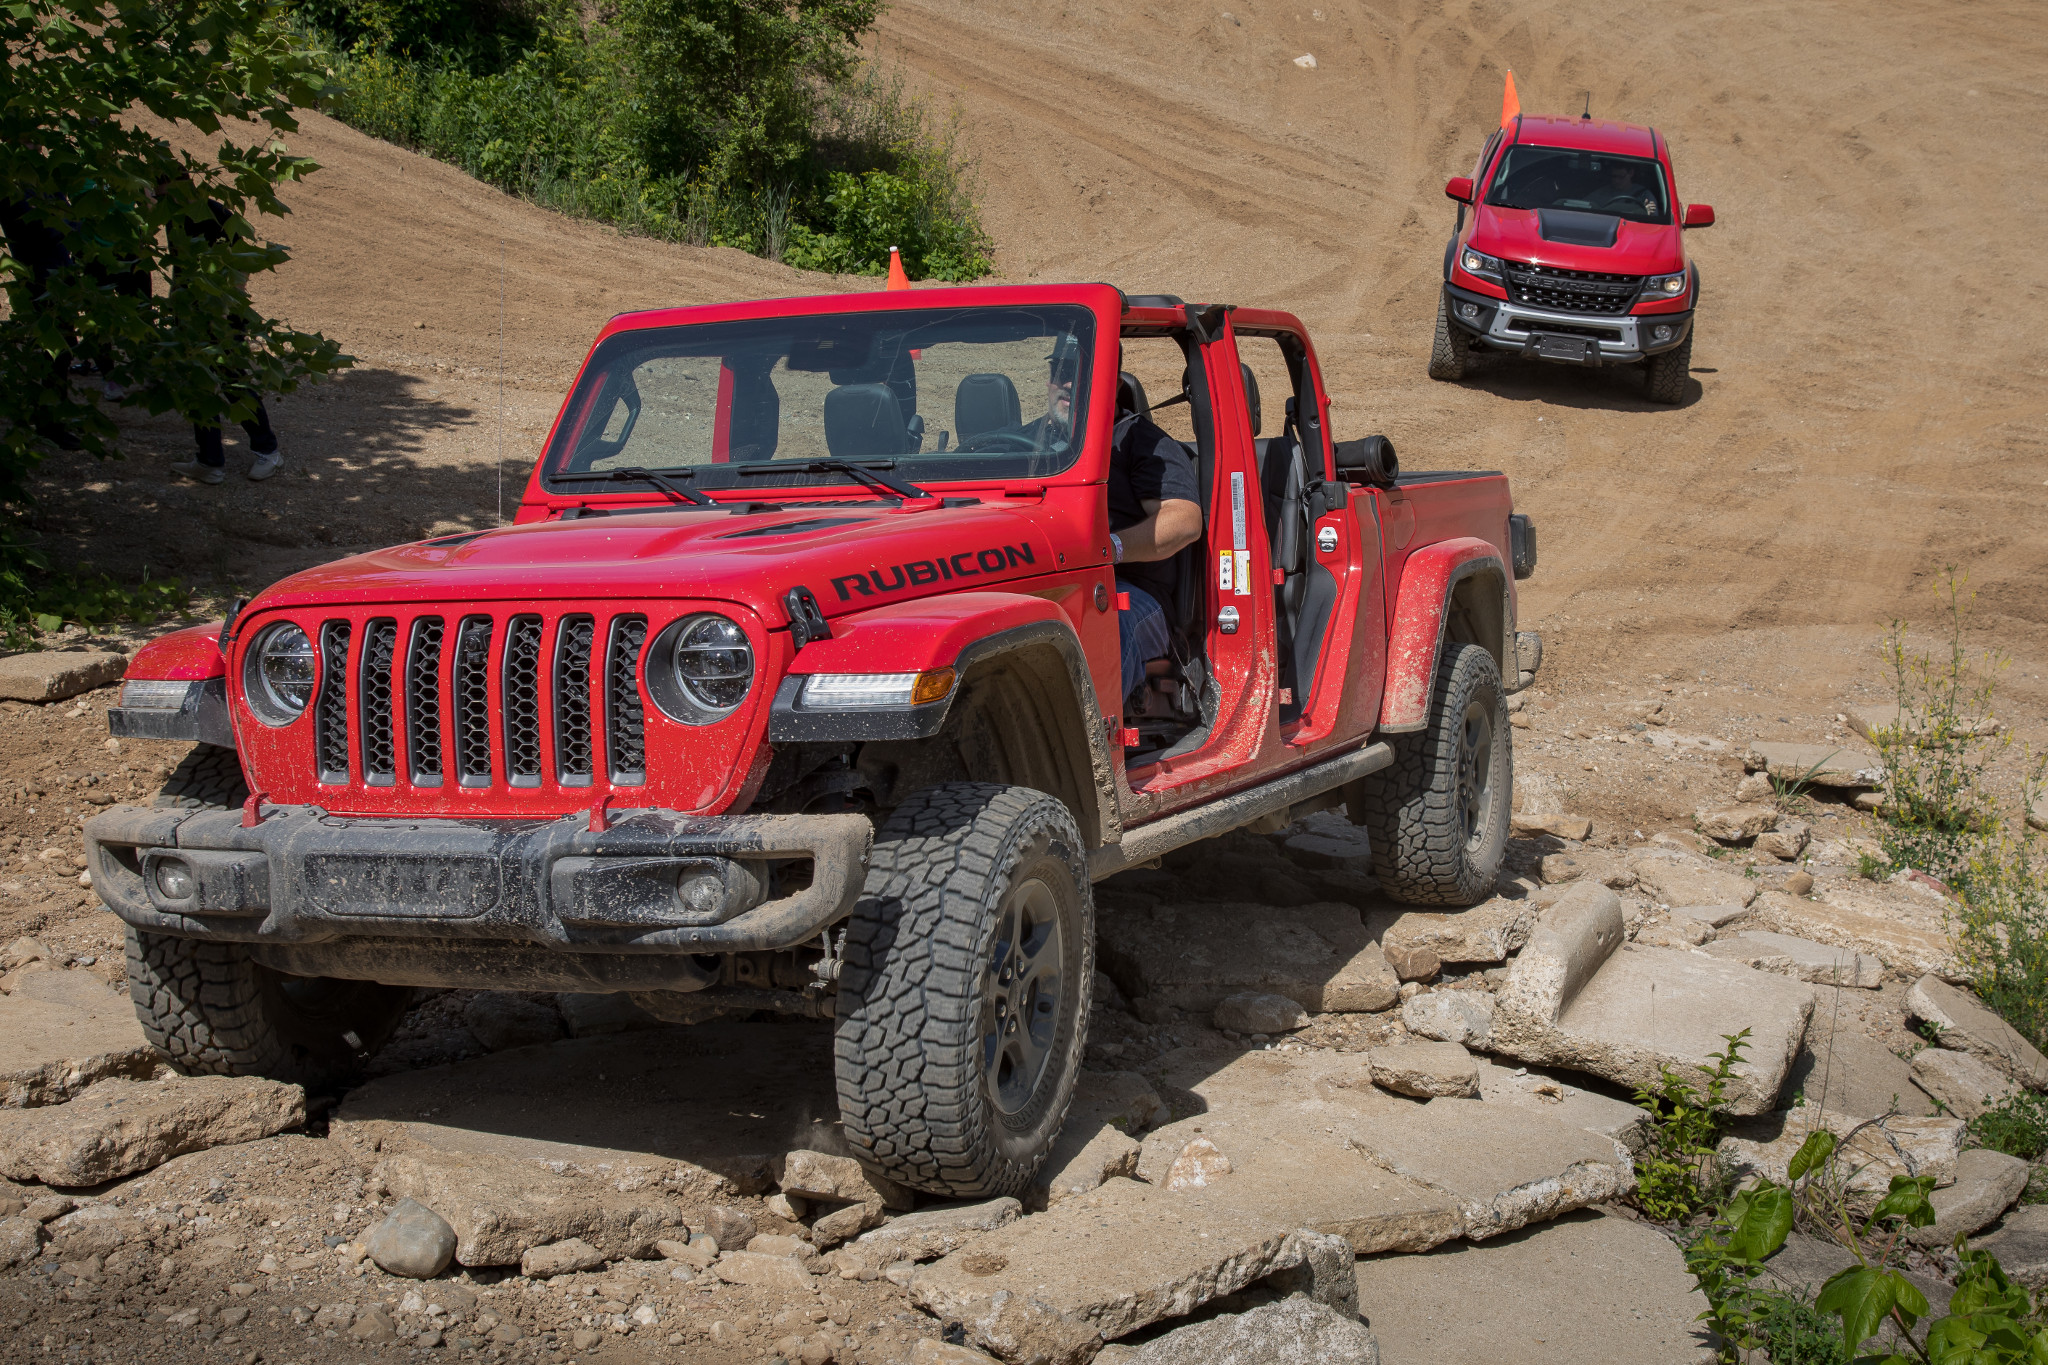 jeep--chevrolet-colorado-zr2-bison-and-gladiator-2019--2020-04-angle--dynamic--front--off-road--red.jpg